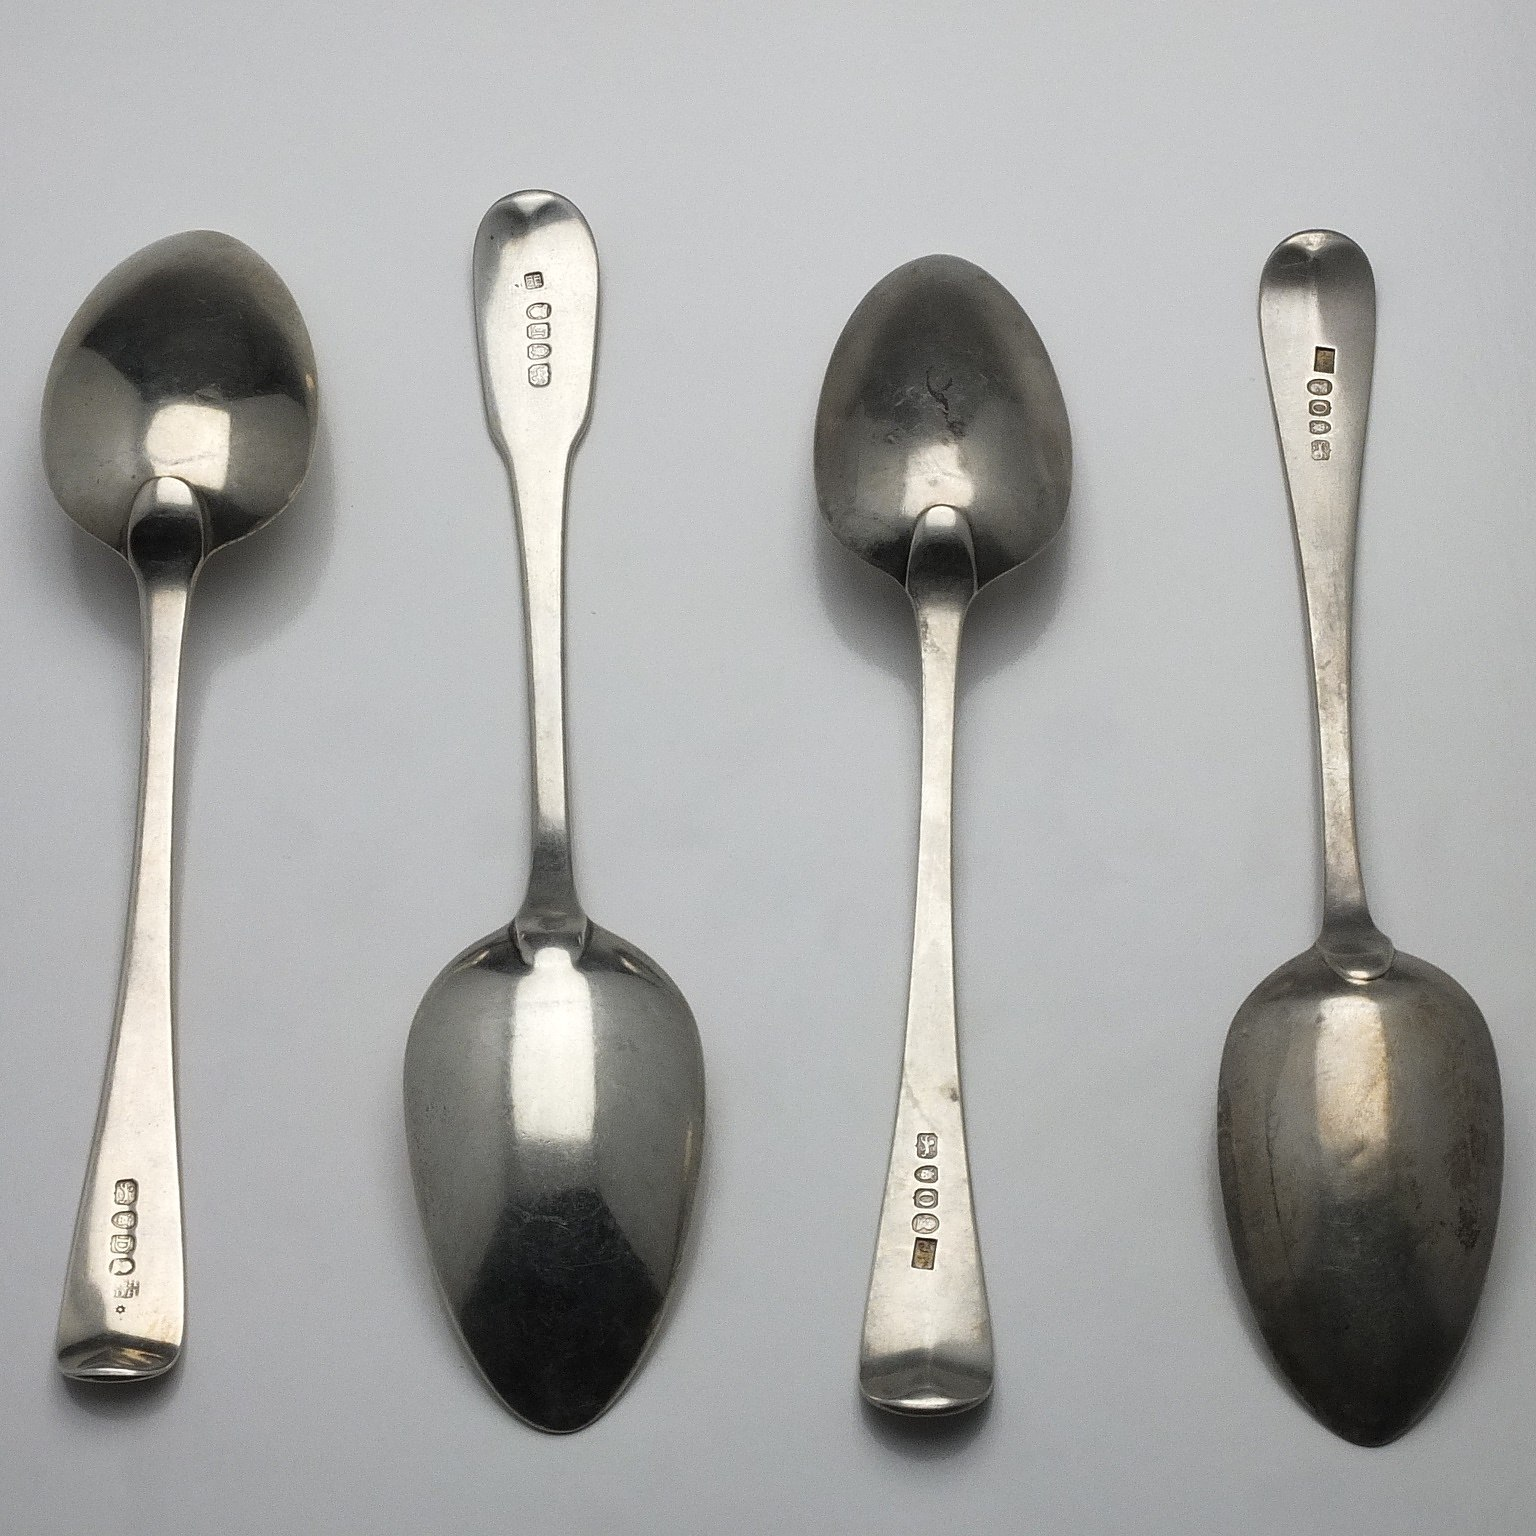 'Four Sterling Silver Table Spoons London 1799, 1801, 1809 and 1809'